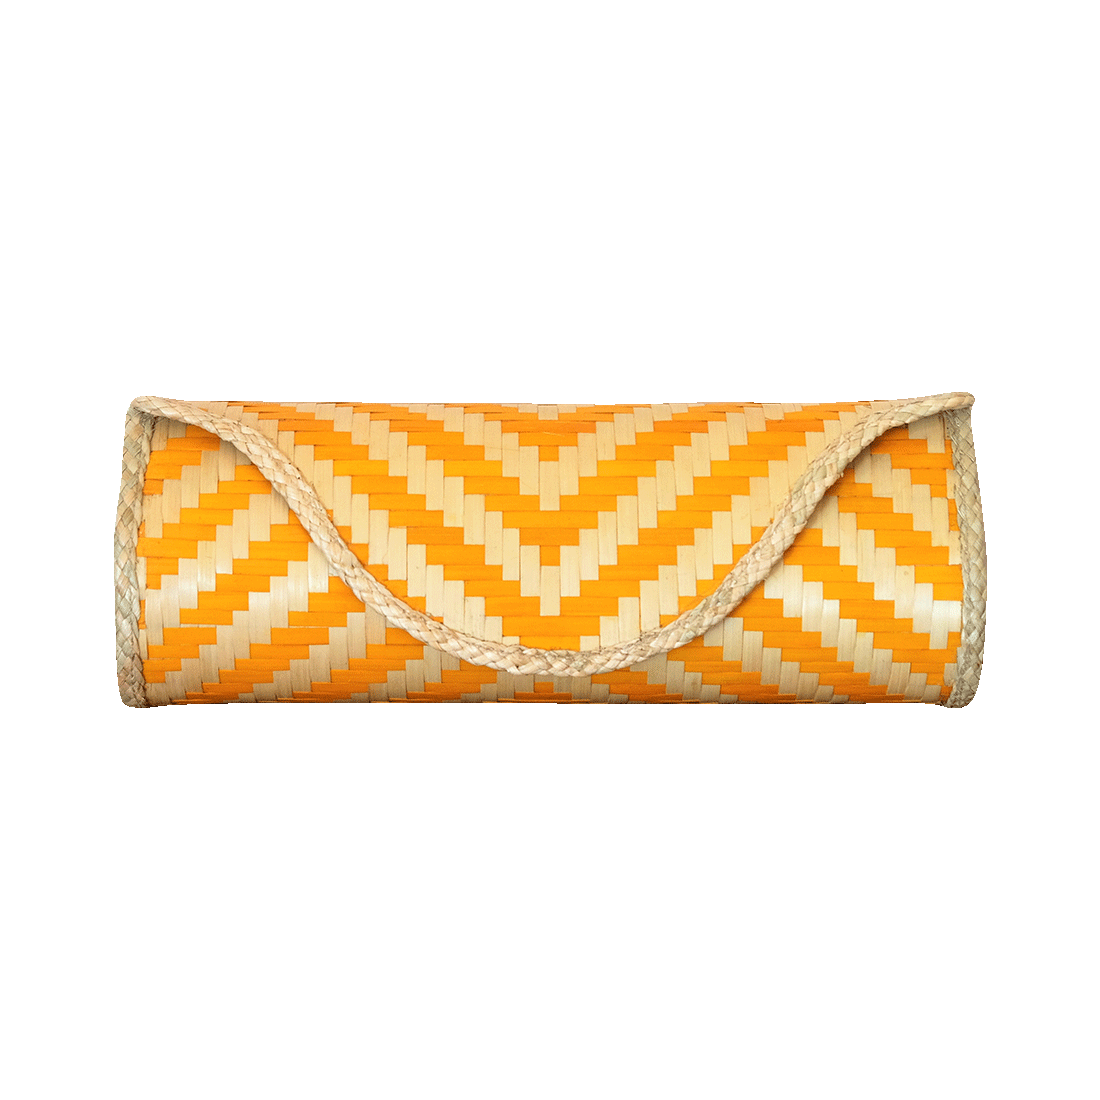 Bamboo Skin Maya Clutch - Natural Yellow